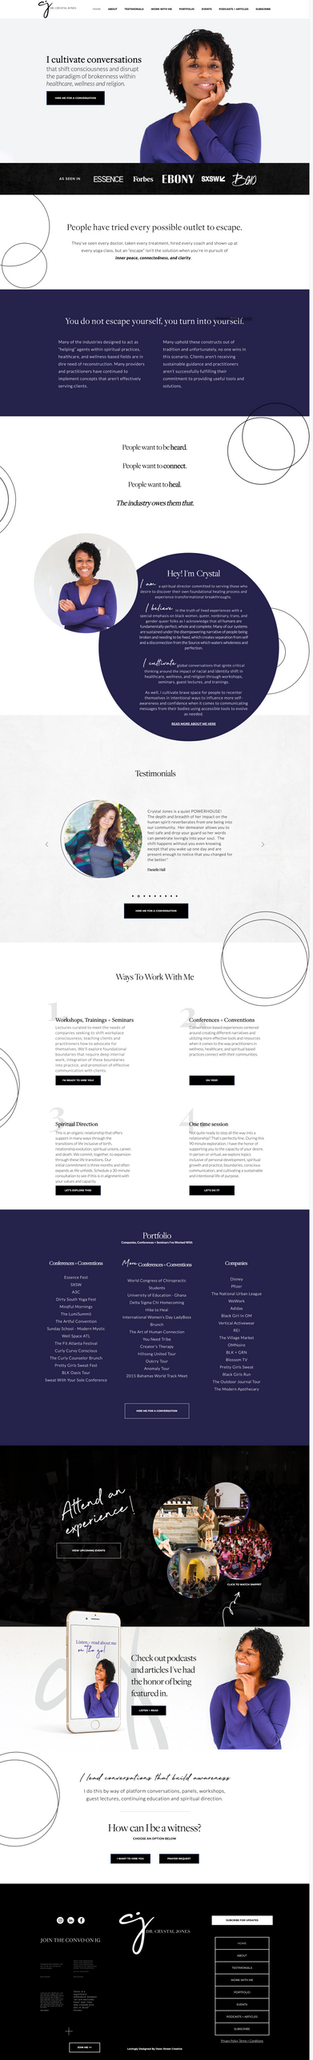 Web Design For Dr. Crystal Jones